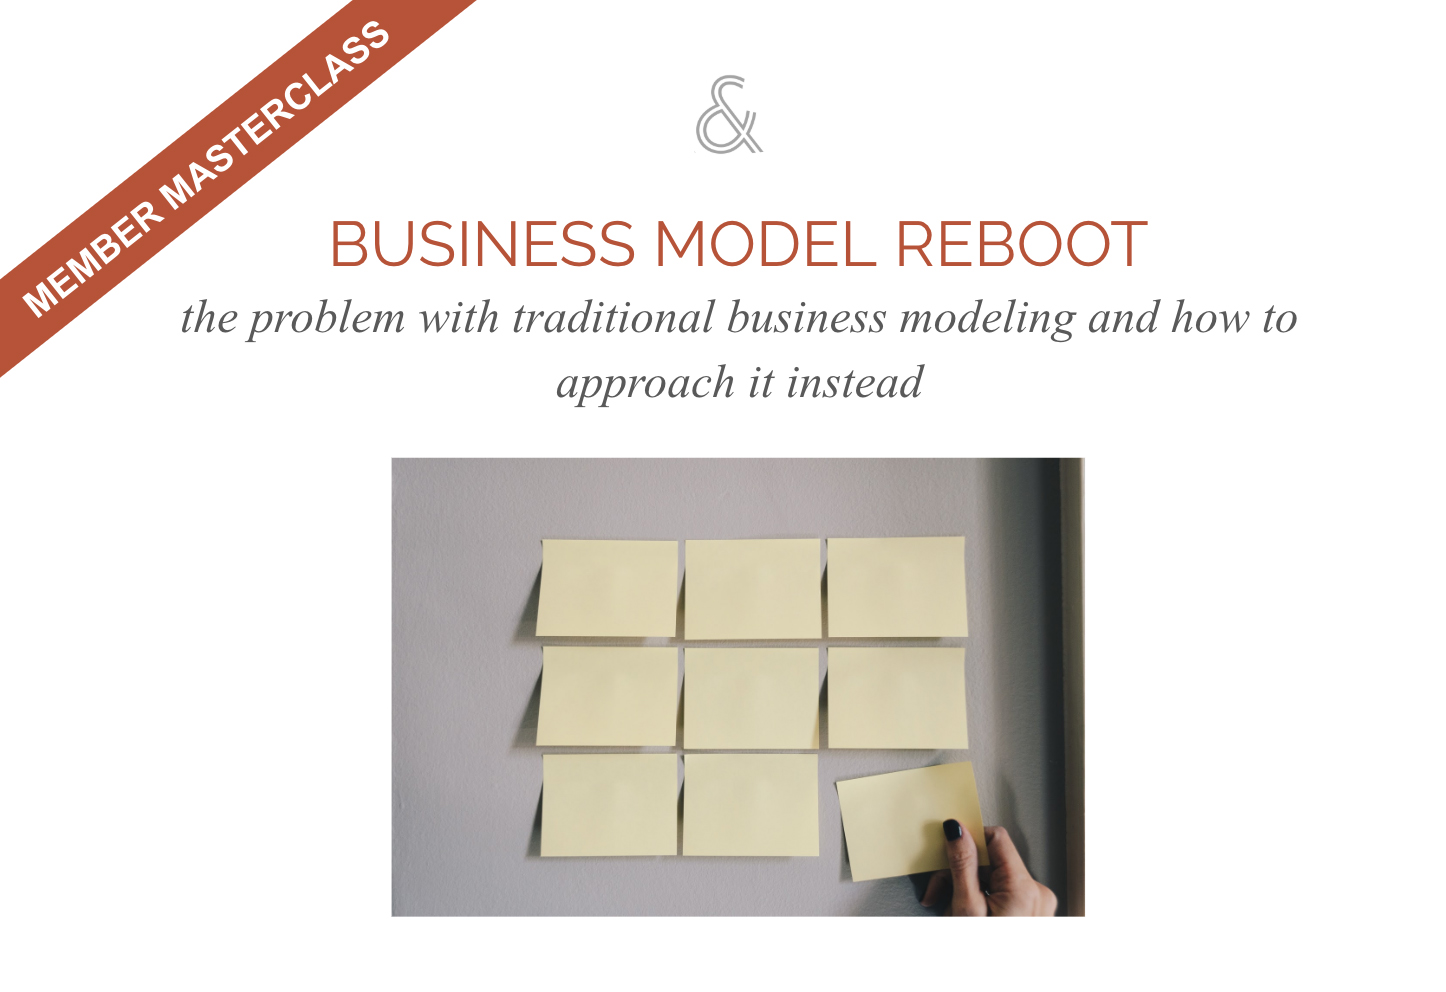 Business Tools Resources Worksheets And Workbooks For Social Entrepreneurs